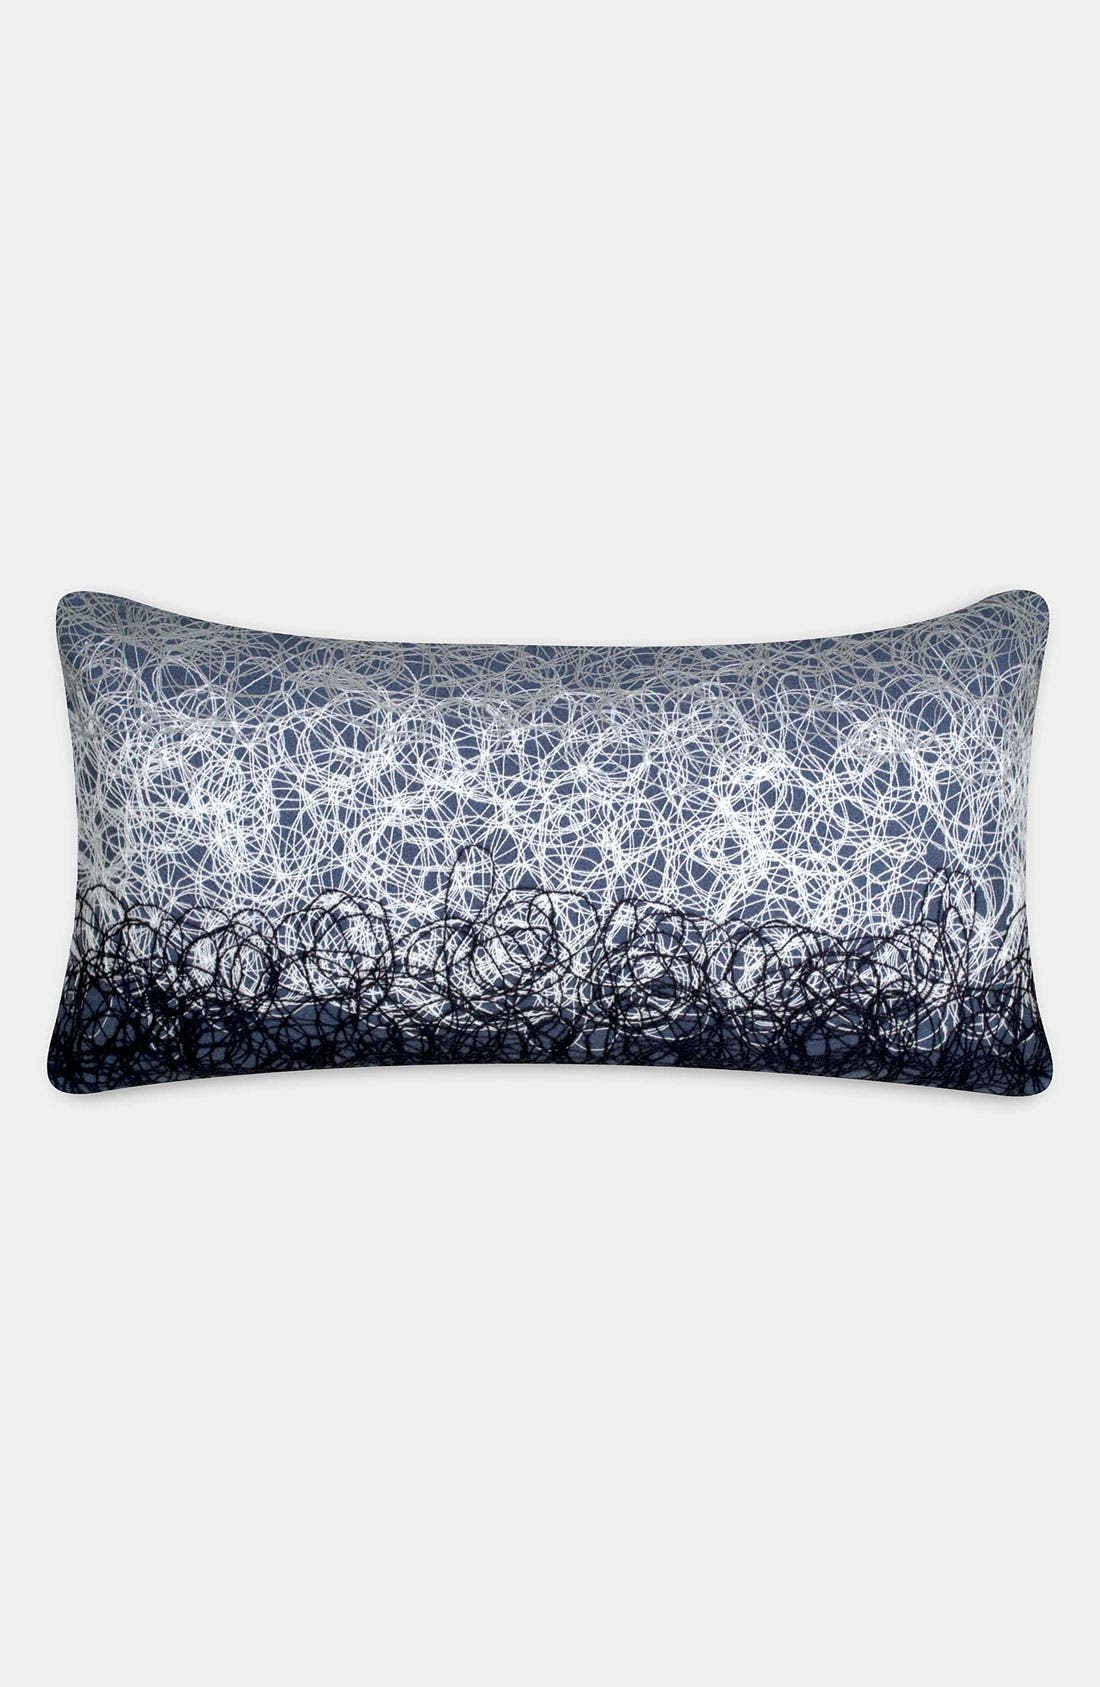 Alternate Image 1 Selected - DKNY 'City Rhythm - City Scribble' Pillow